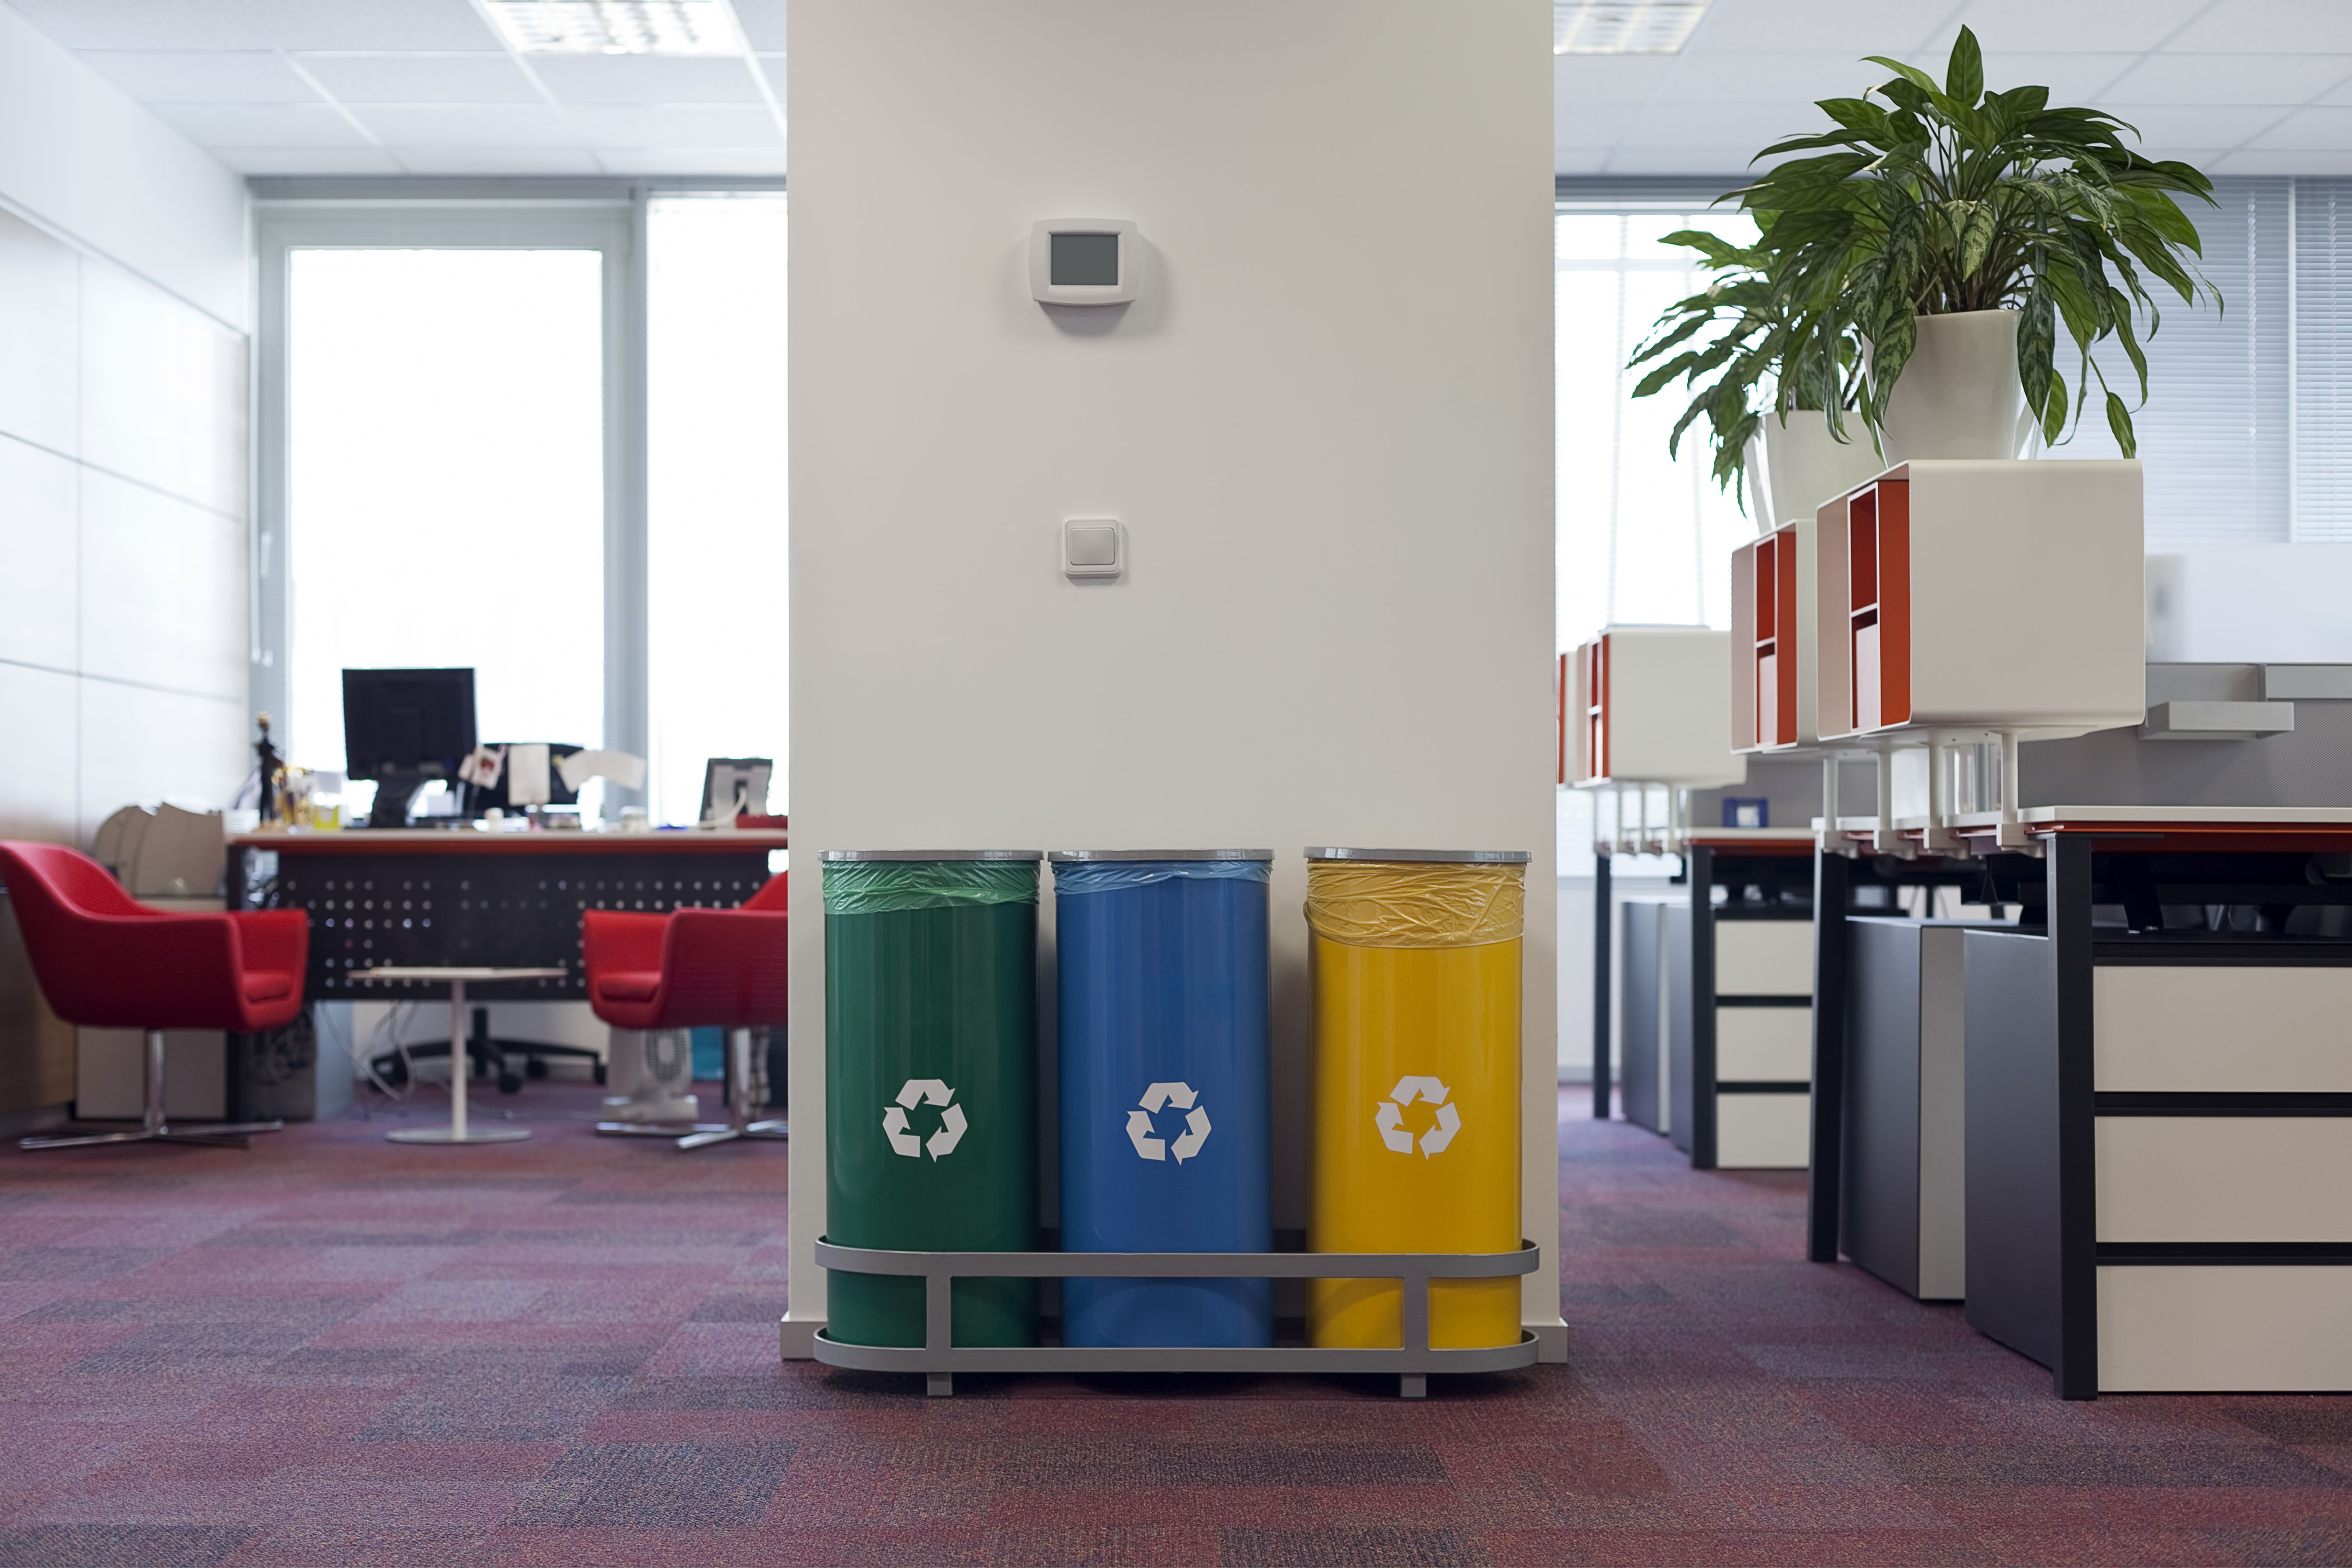 Different recycling bins in an office